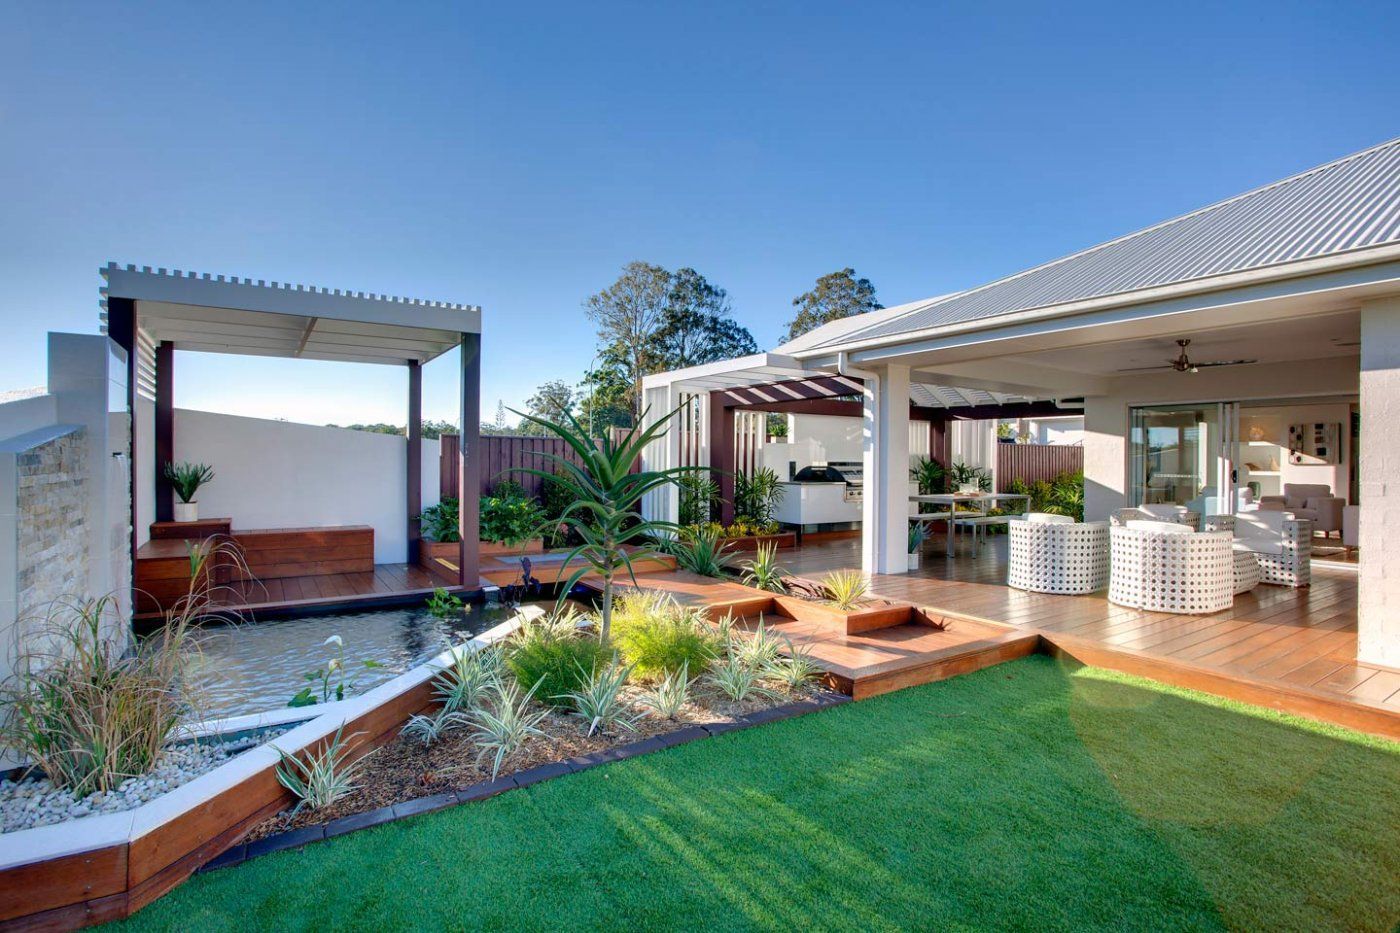 Portobello mcdonald jones homes house ideas mcdonald jones homes home backyard for Portobello outdoor swimming pool